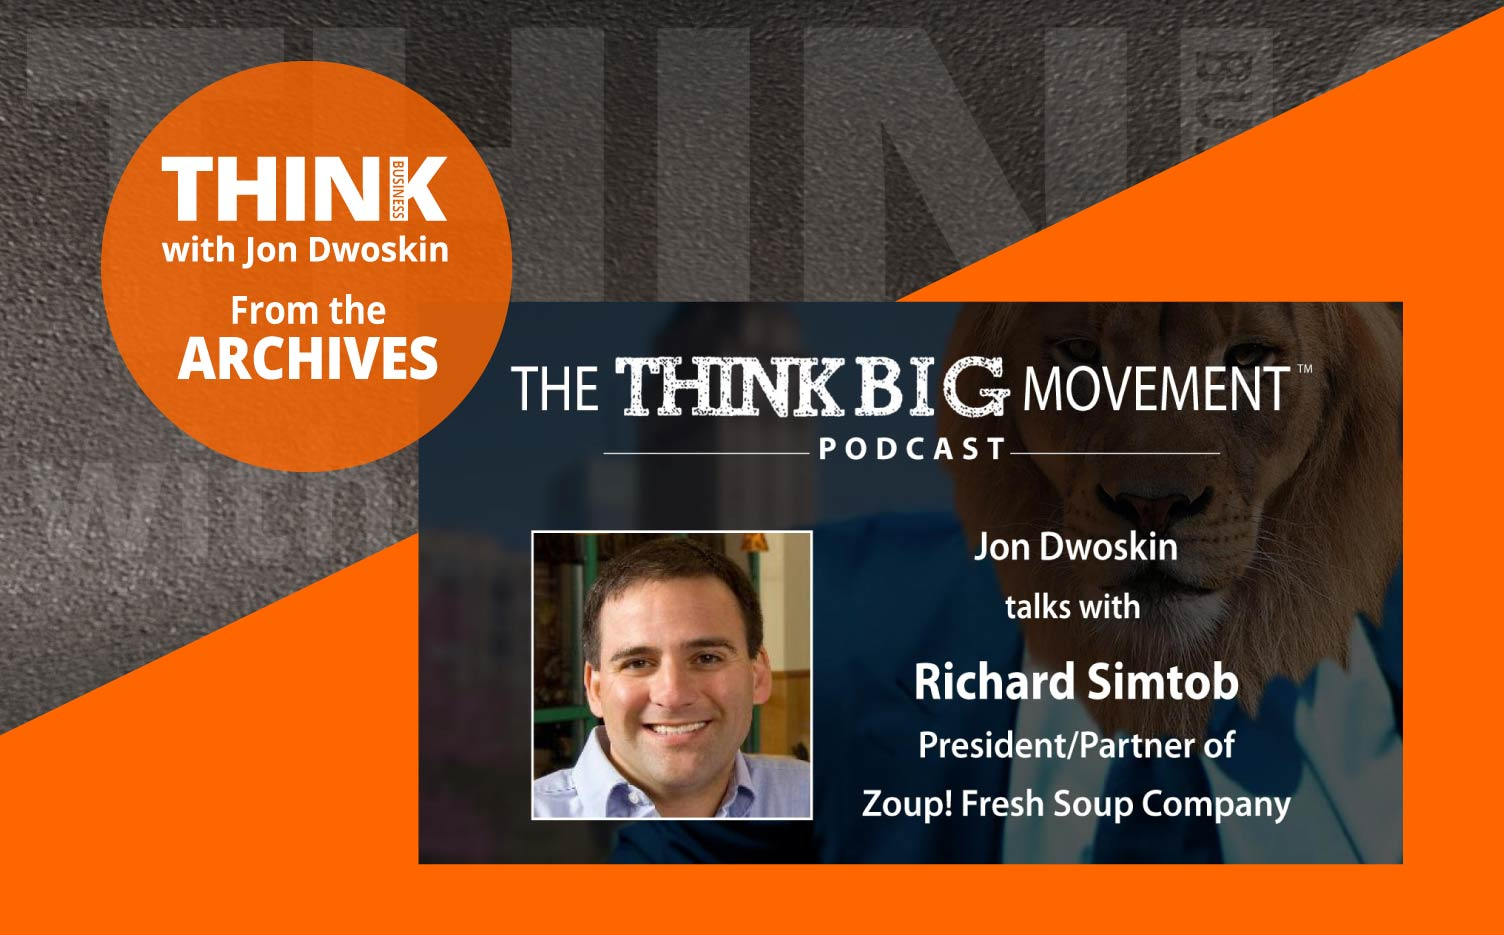 THINK Business Podcast: Richard Simtob, President/Partner of Zoup! Fresh Soup Company